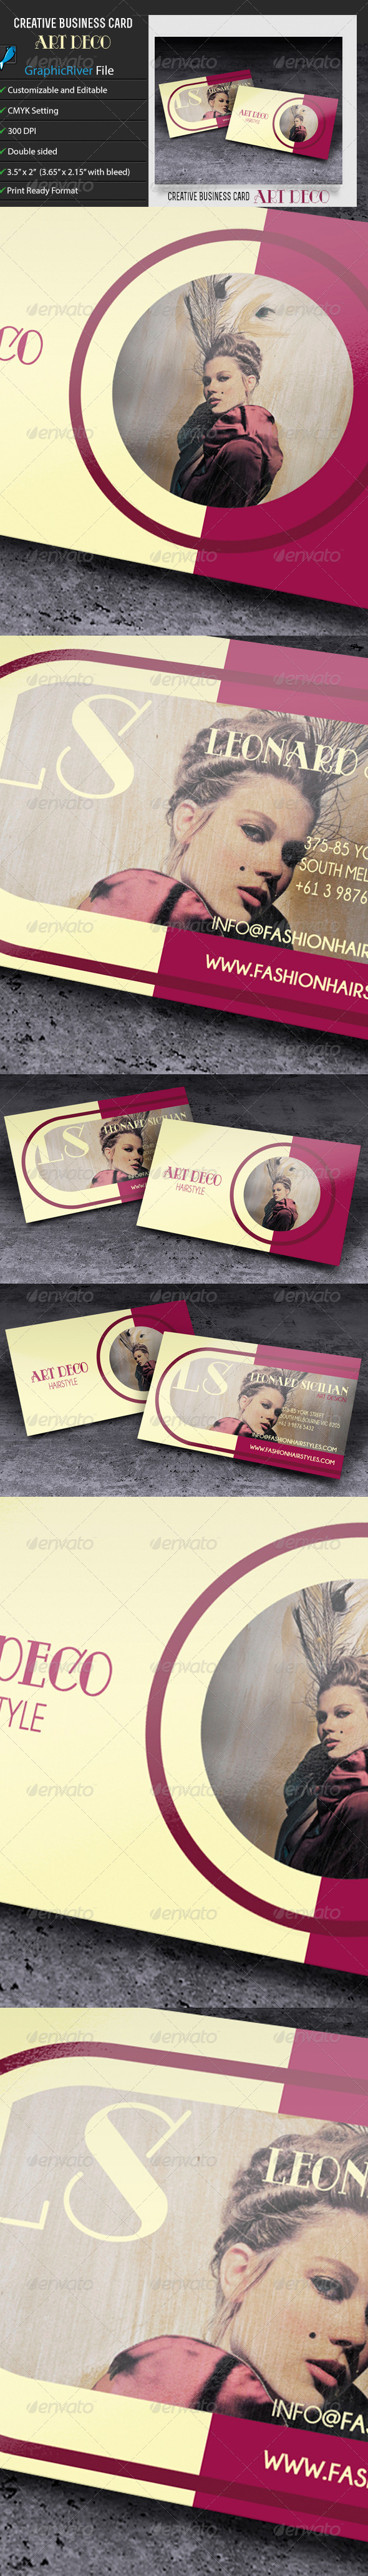 GraphicRiver Business Card ArtDeco Hairstyle 6685323